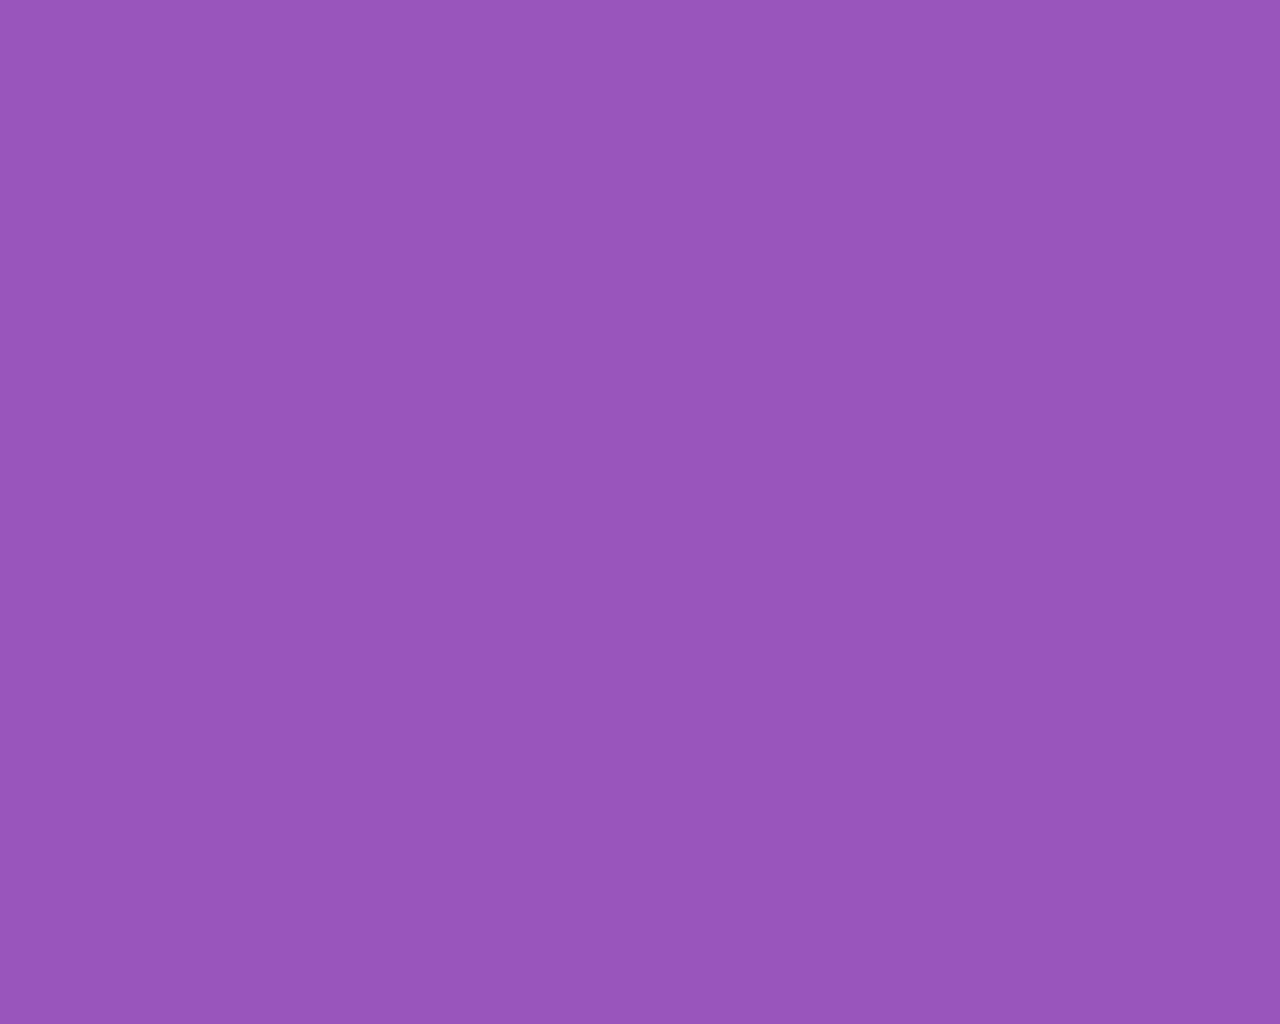 1280x1024 Deep Lilac Solid Color Background